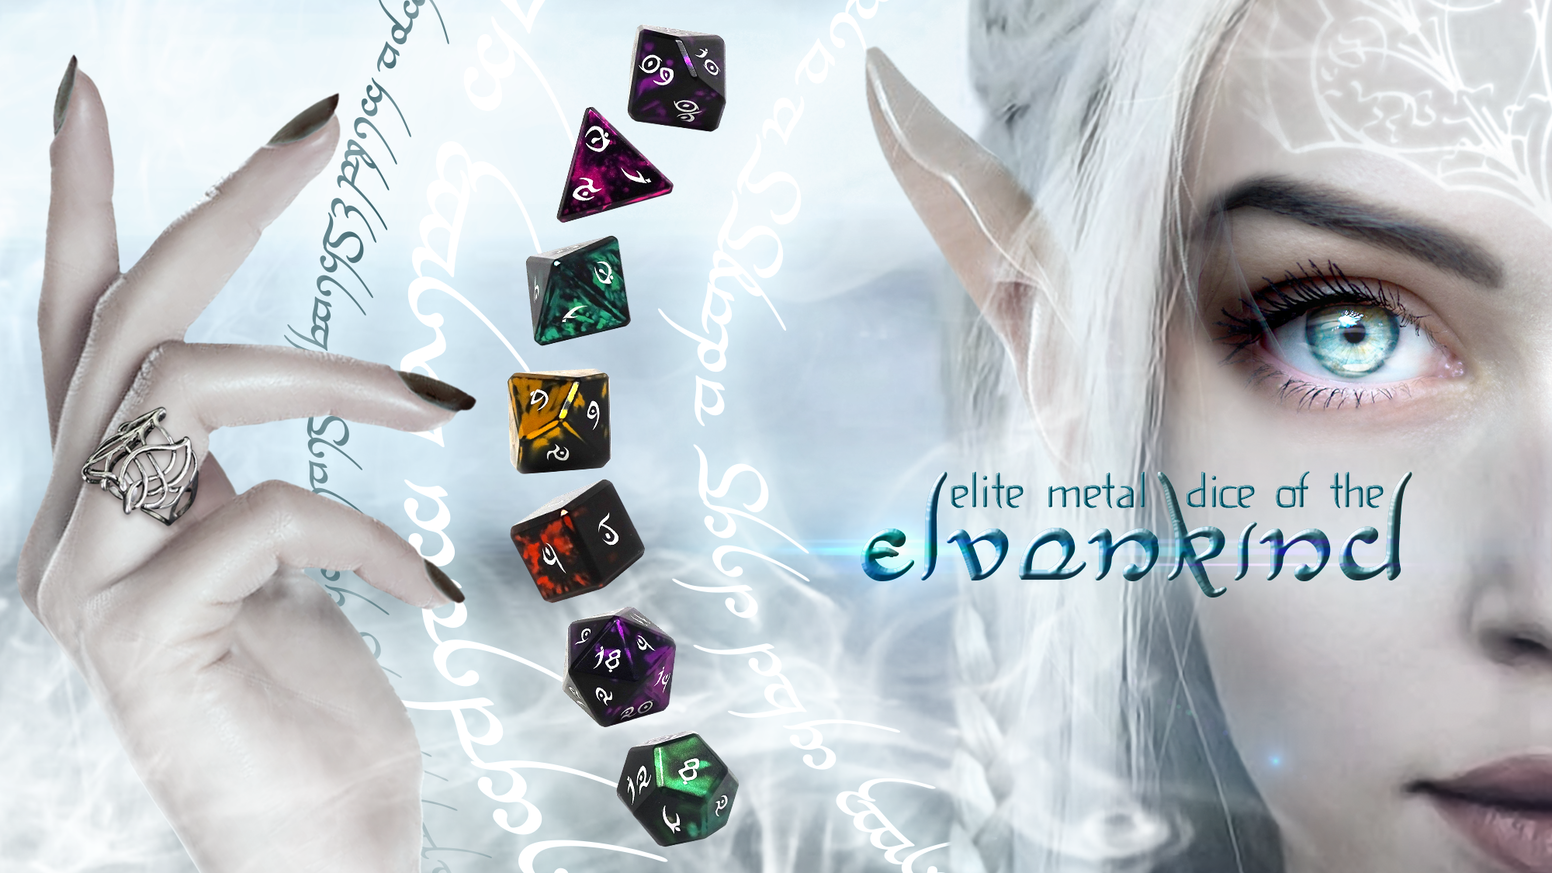 A new series of high-end, precision CNC aluminum dice featuring unique color blends and our hand-drawn, brand new Elvenkind font.